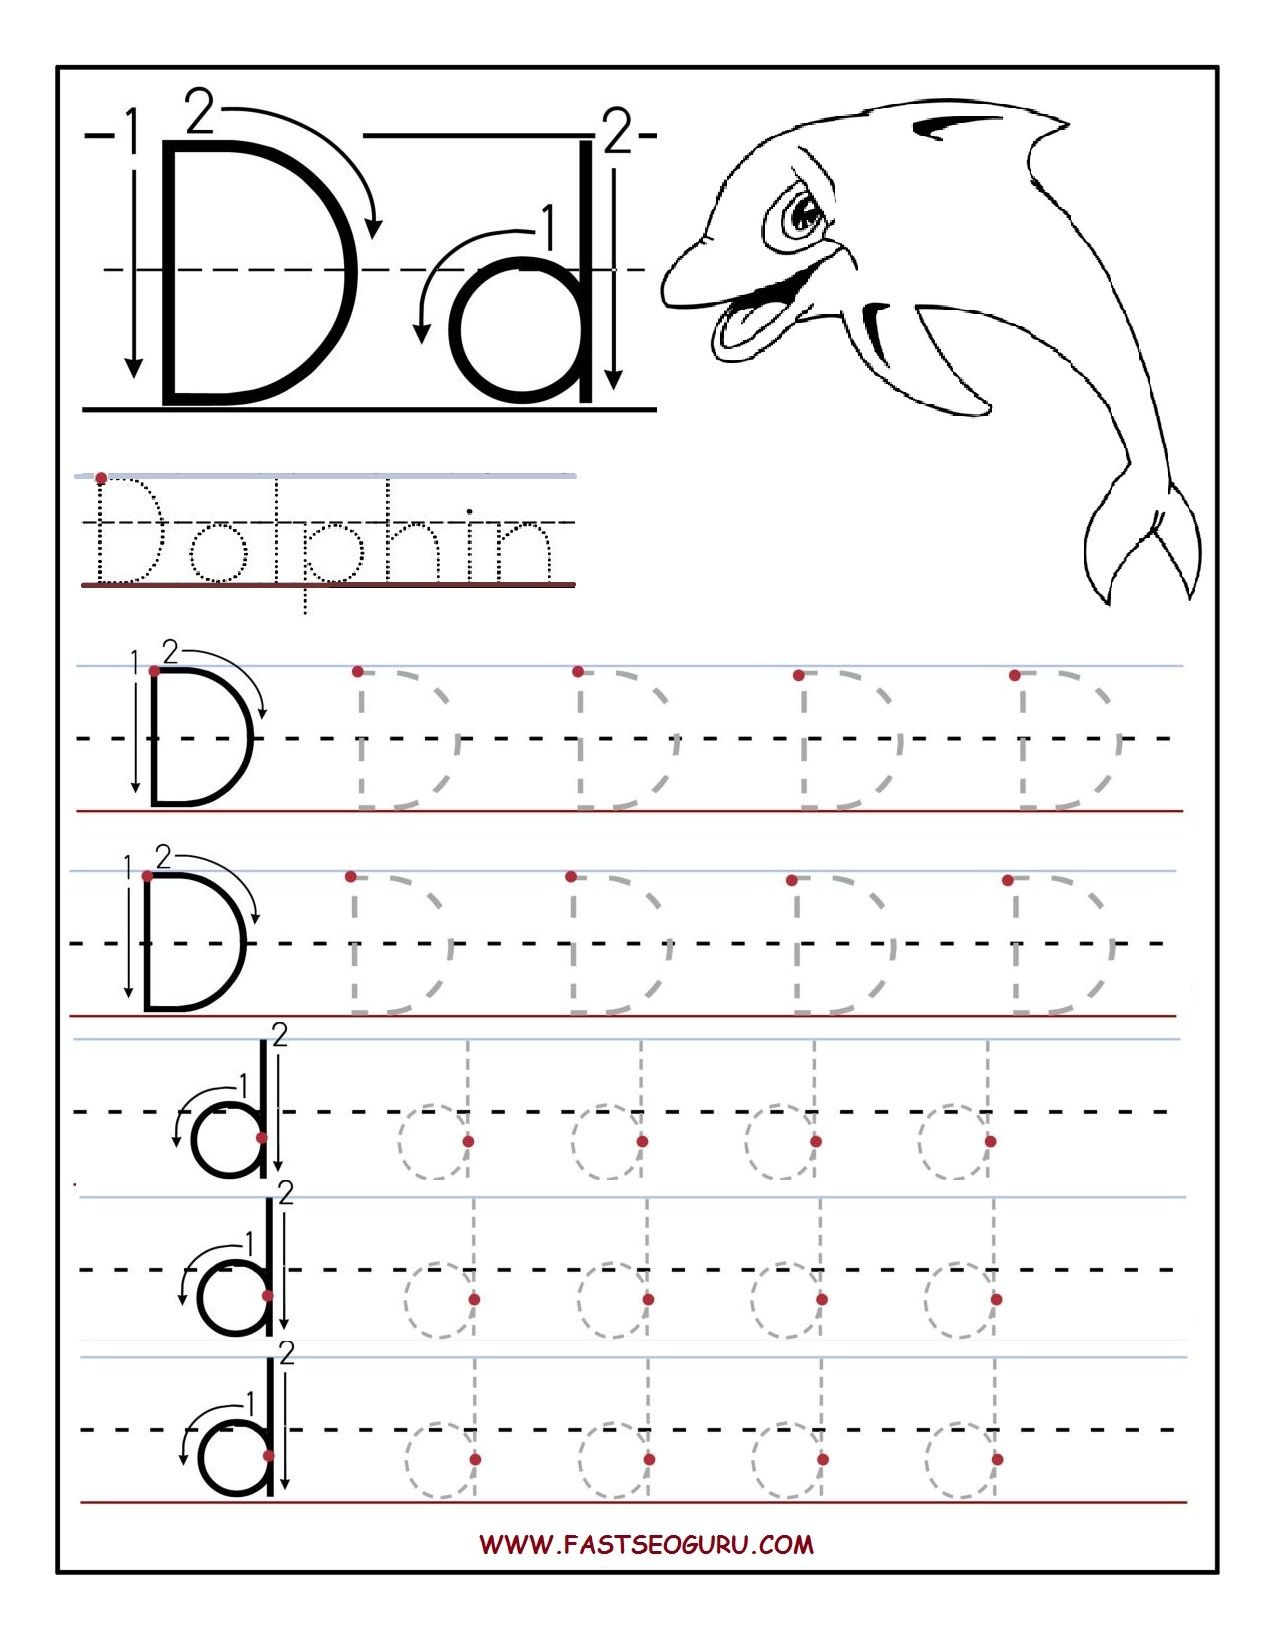 Printable letter Z tracing worksheets for preschool | Kids ...